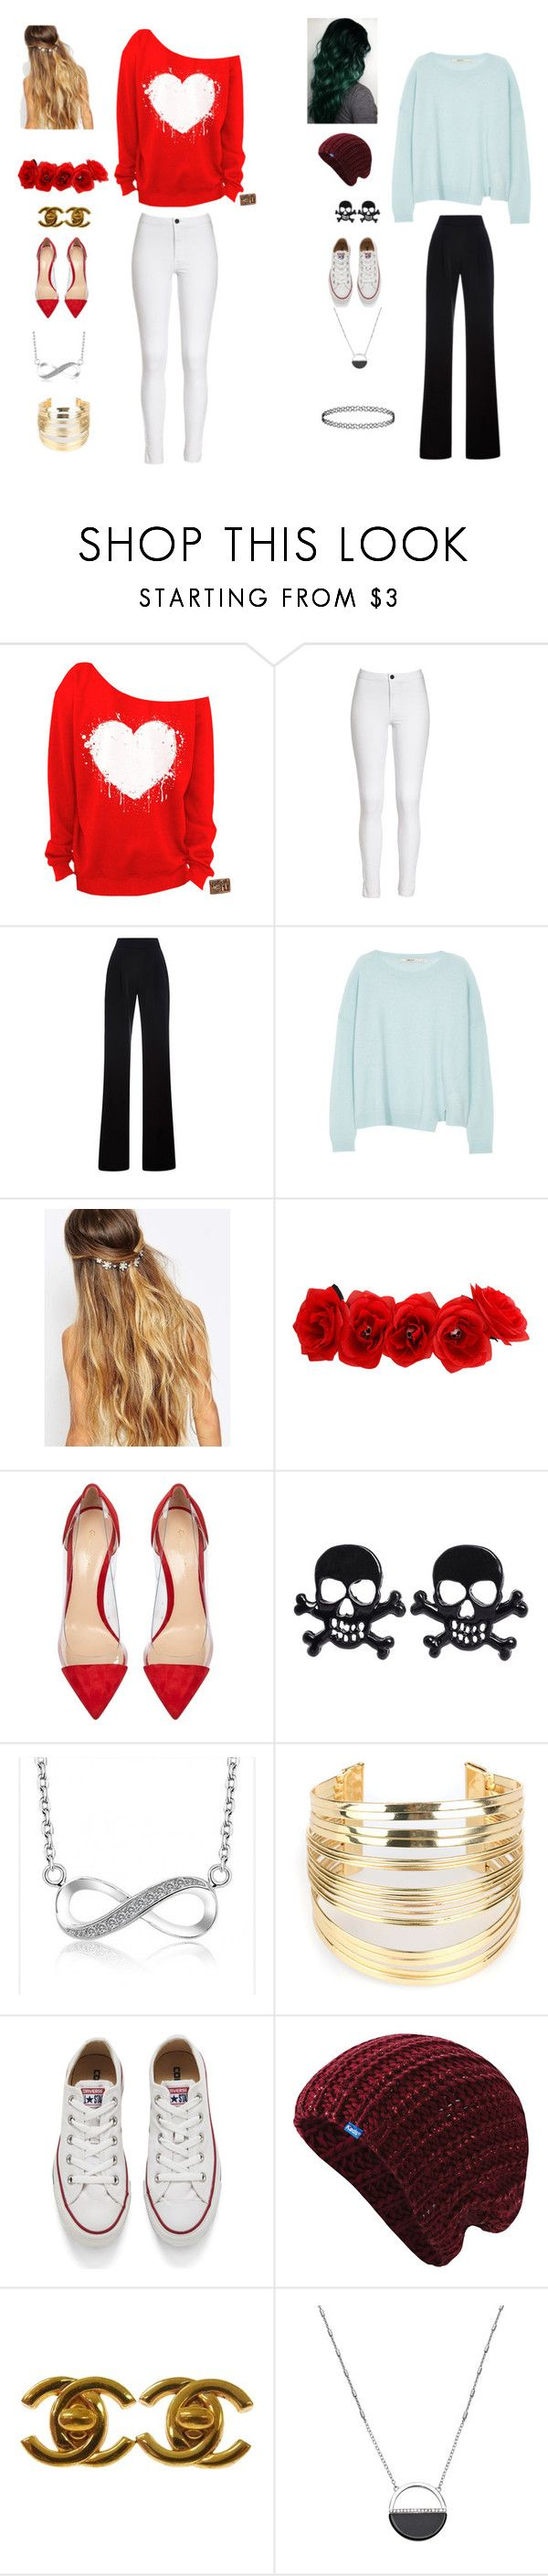 """Popular & Normal"" by naturelove12345 ❤ liked on Polyvore featuring beauty, Misha Nonoo, J Brand, Johnny Loves Rosie, Hot Topic, Gianvito Rossi, WithChic, Converse, Keds and Chanel"